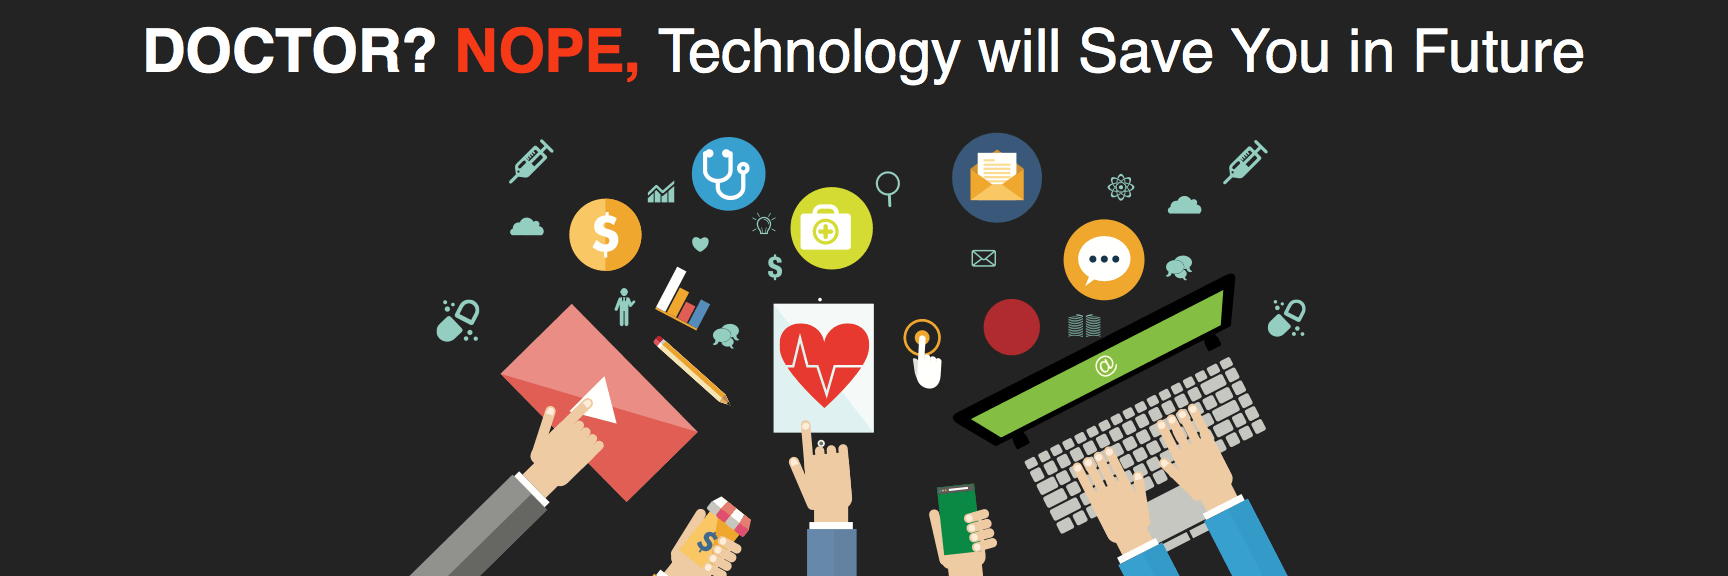 technology save lives